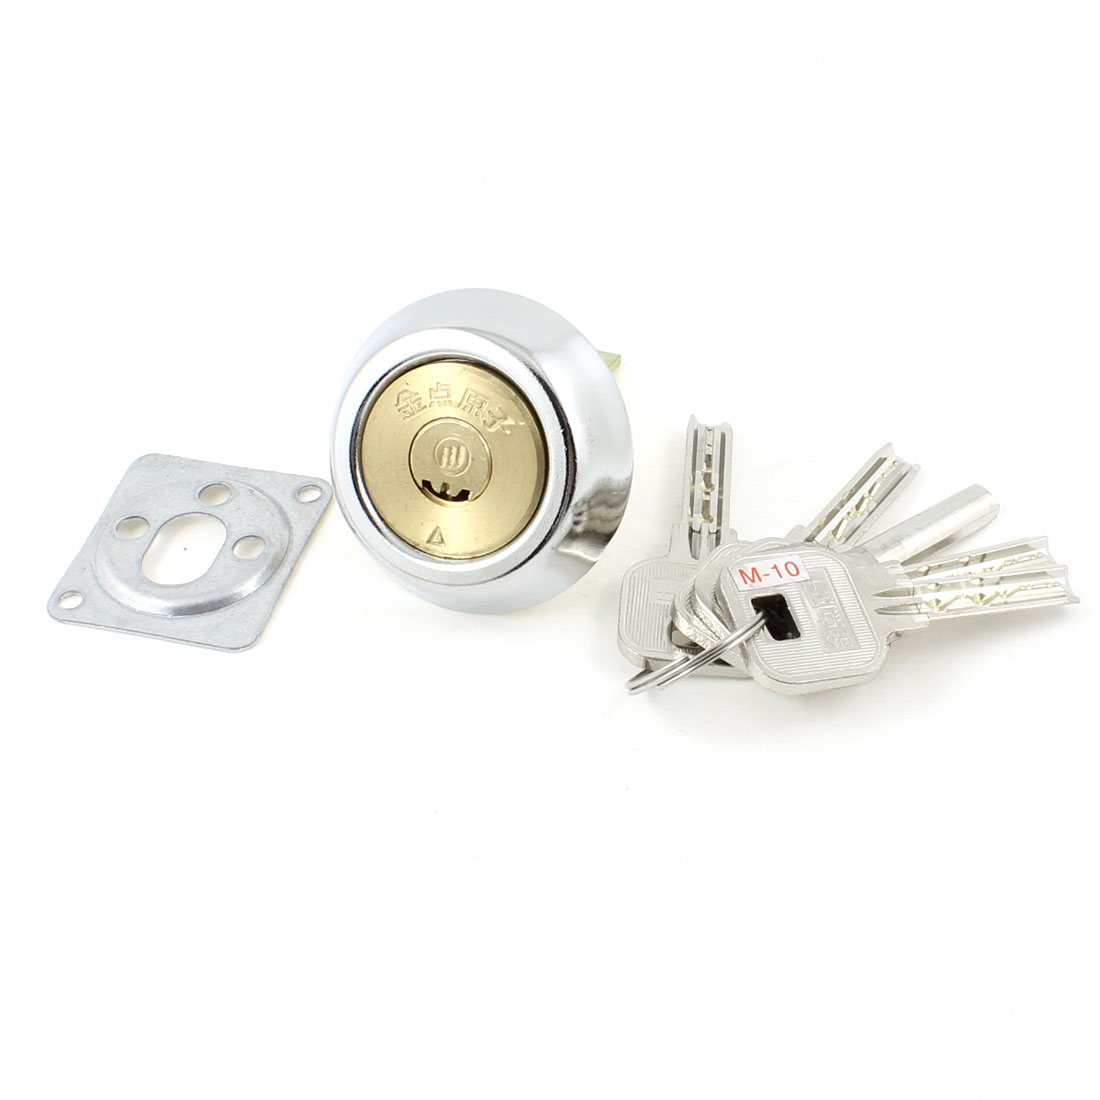 Doors Security Silver Tone Metal Key Locking Lock Cylinder Tapered Ned Set